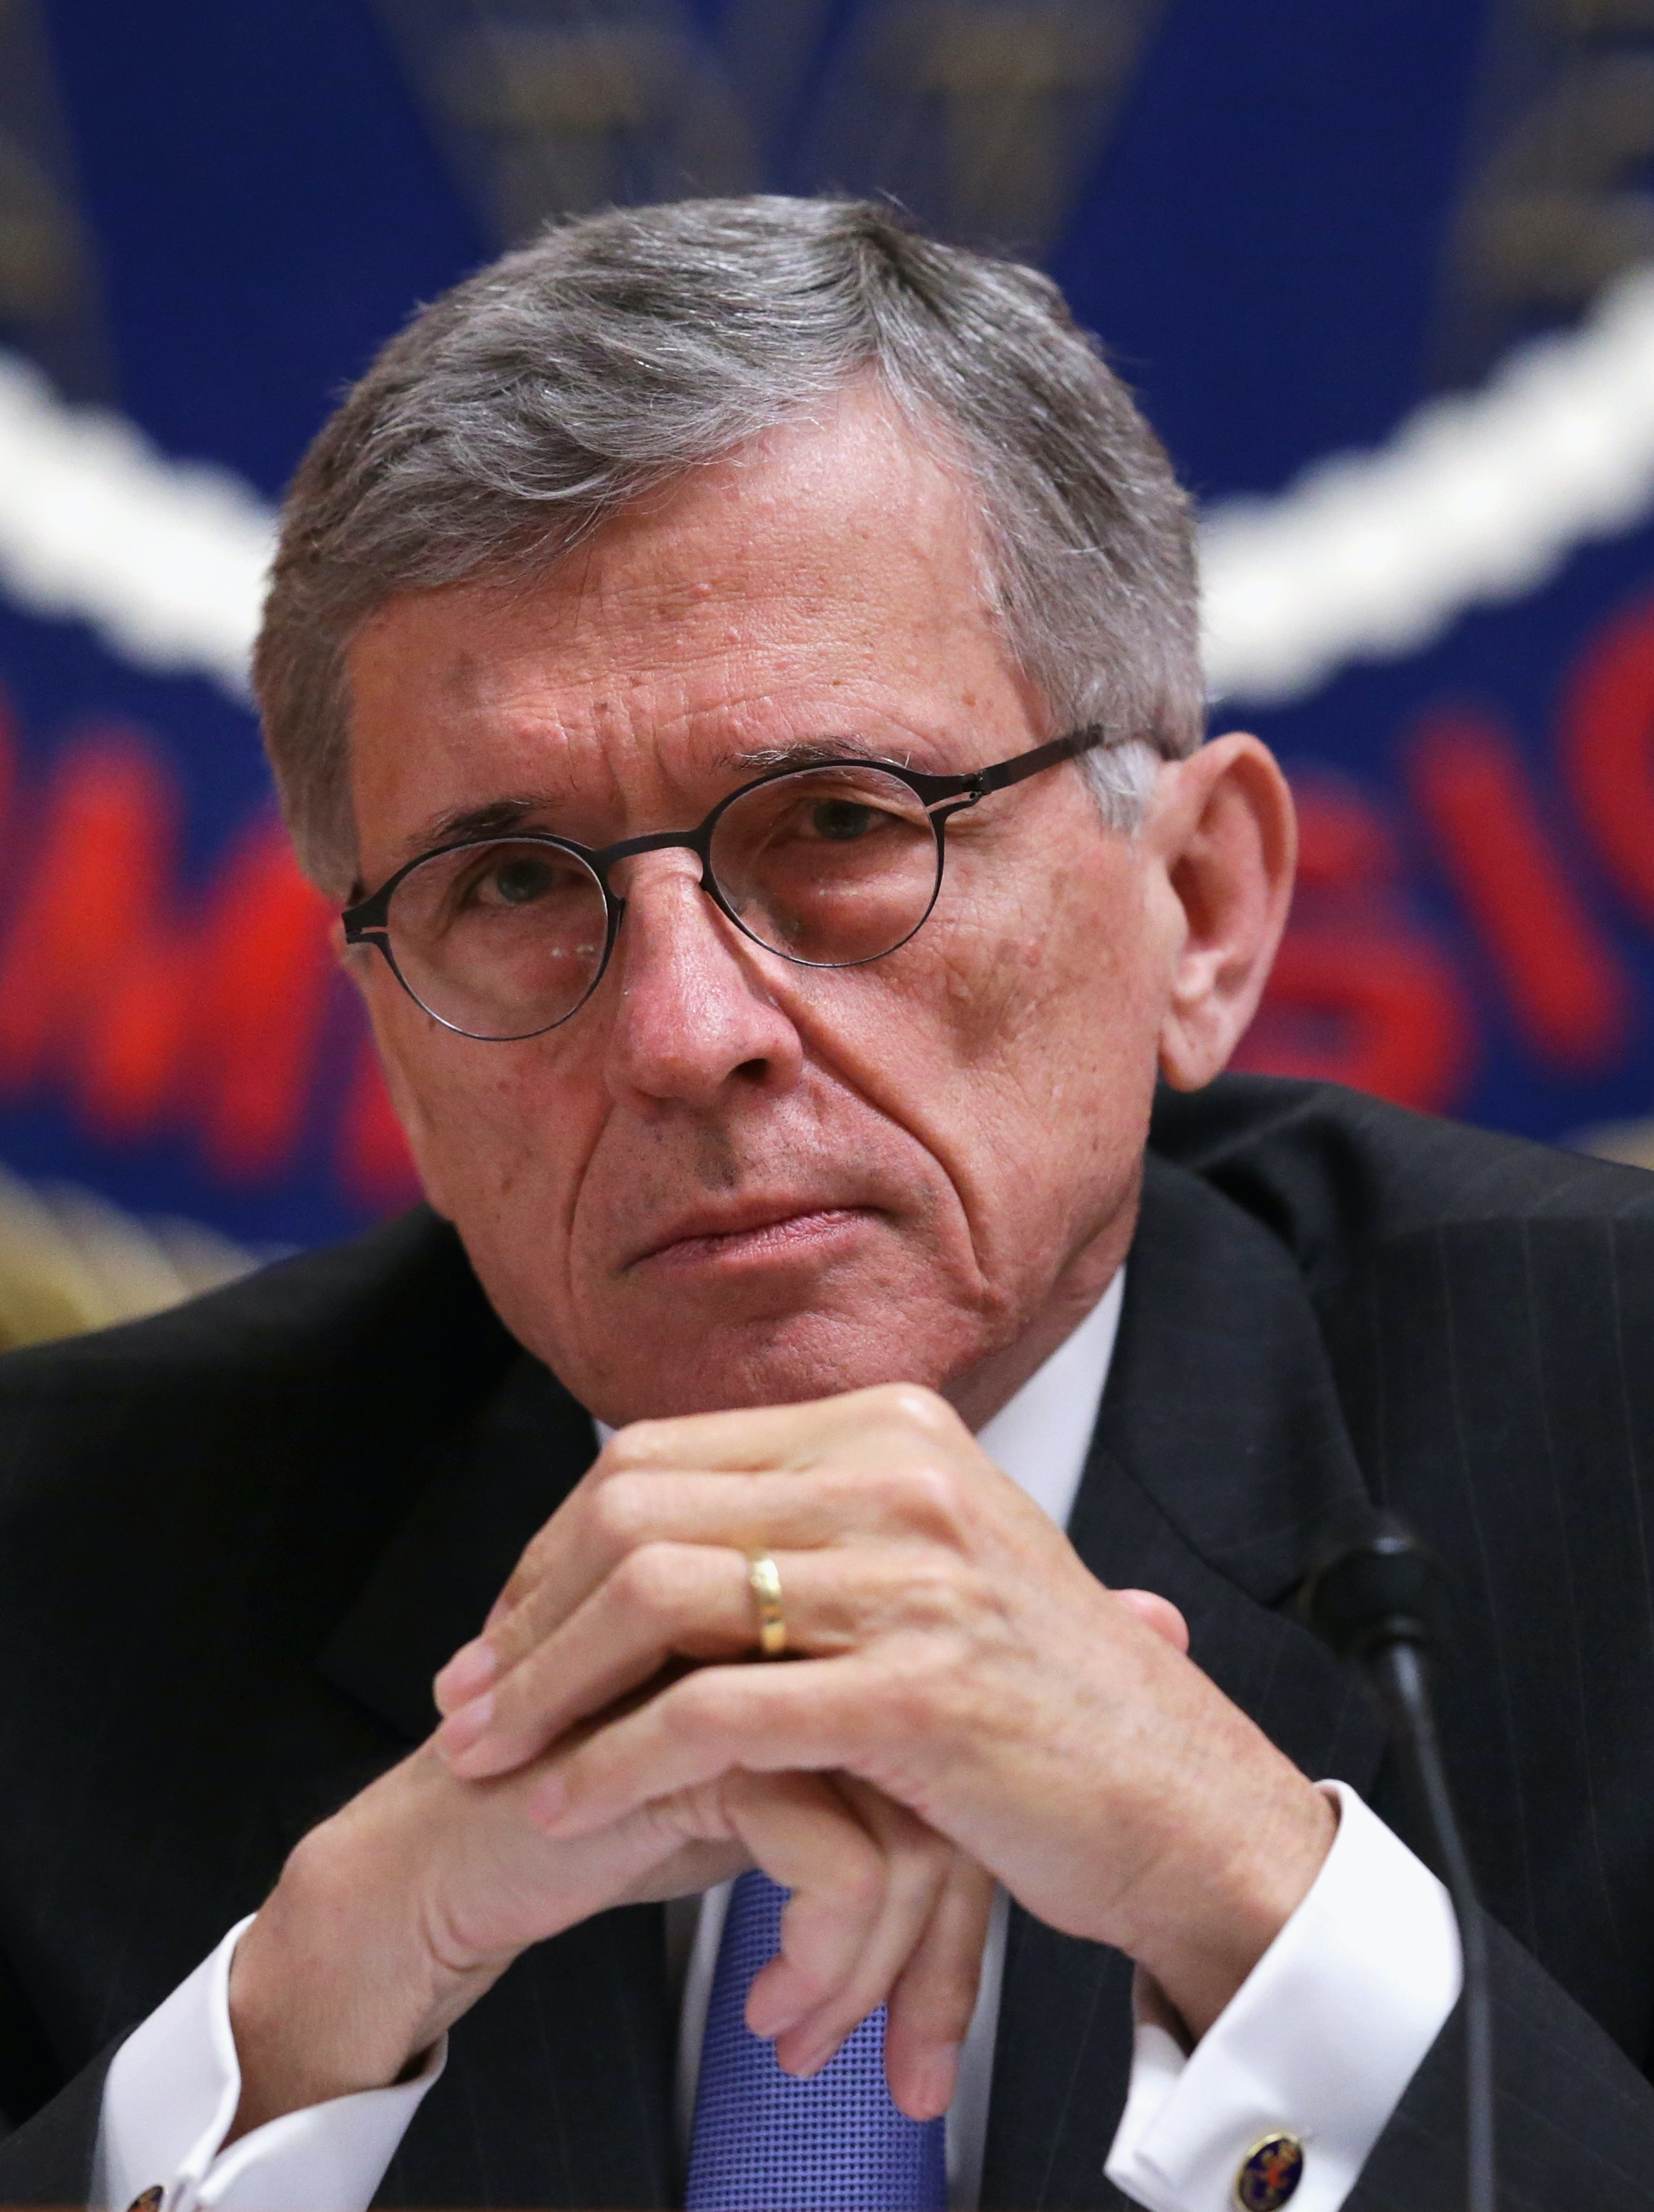 WASHINGTON, DC - MAY 15:  Federal Communications Commission (FCC) Chairman Tom Wheeler listens during an open meeting to receive public comment on proposed open Internet notice of proposed rulemaking and spectrum auctions May 15, 2014 at the FCC headquarters in Washington, DC. The FCC has voted in favor of a proposal to reform net neutrality and could allow Internet service providers to charge for faster and higher-quality service.  (Photo by Alex Wong/Getty Images)